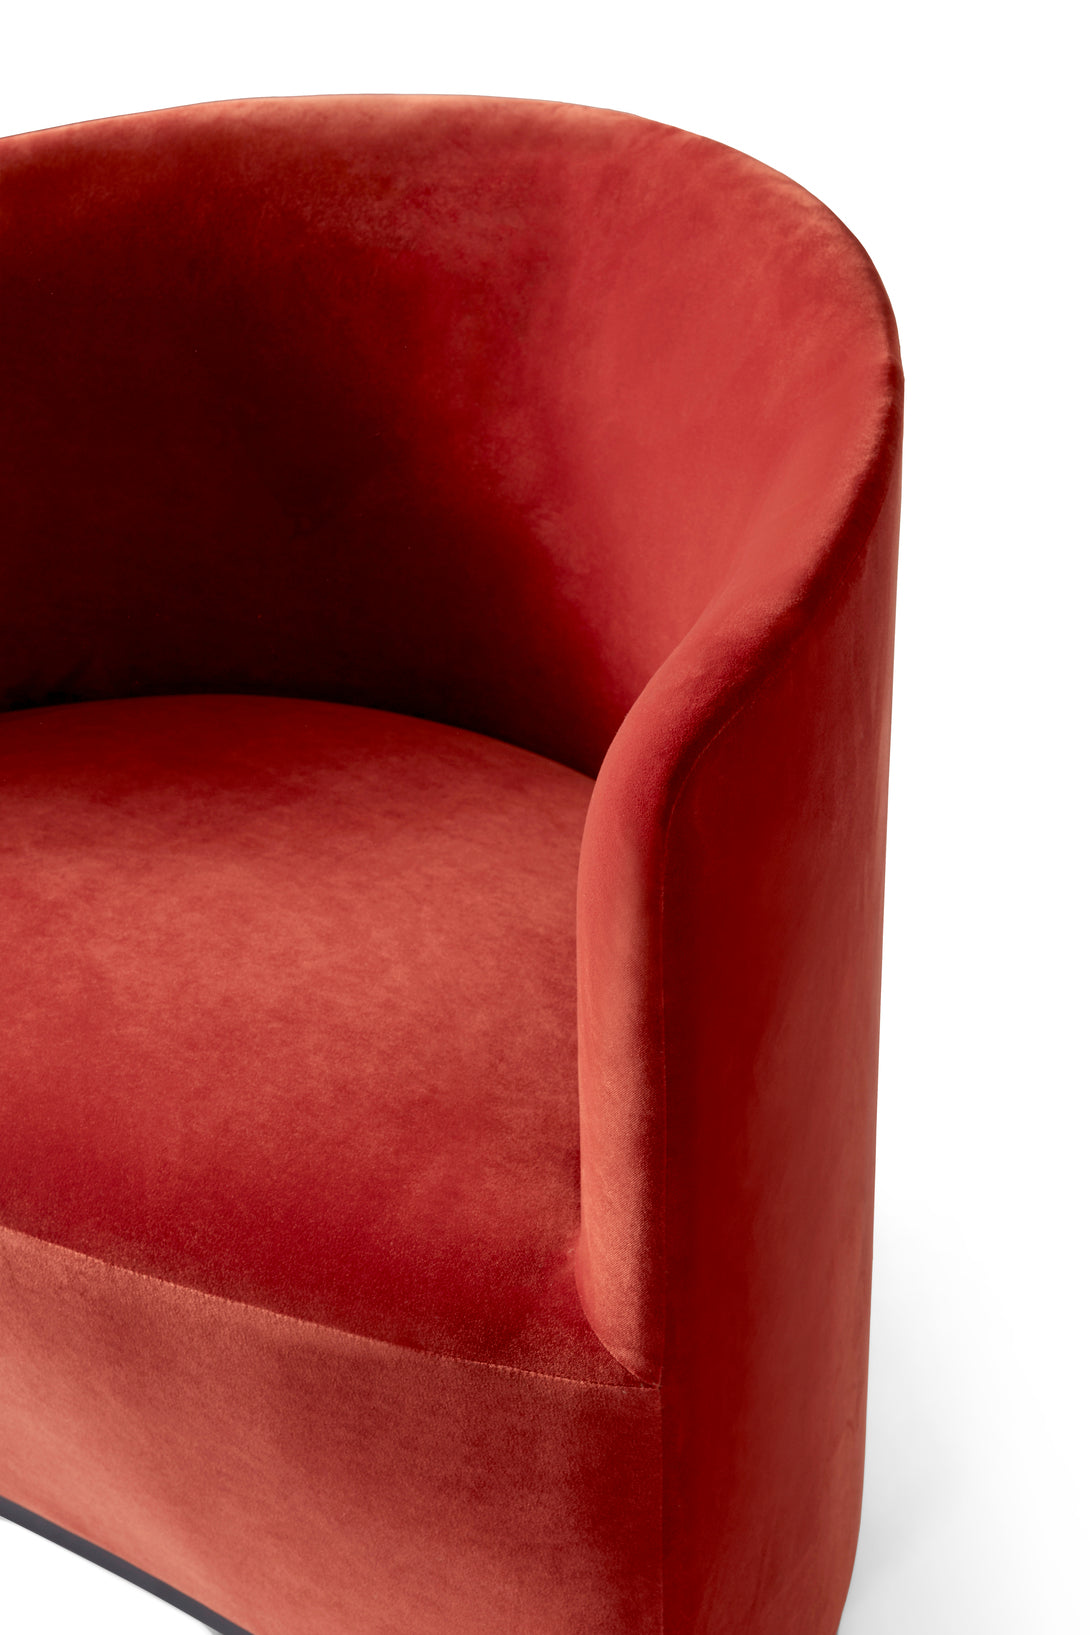 Tearoom - Lounge Chair, City Velvet CA7832/062 fra Menu